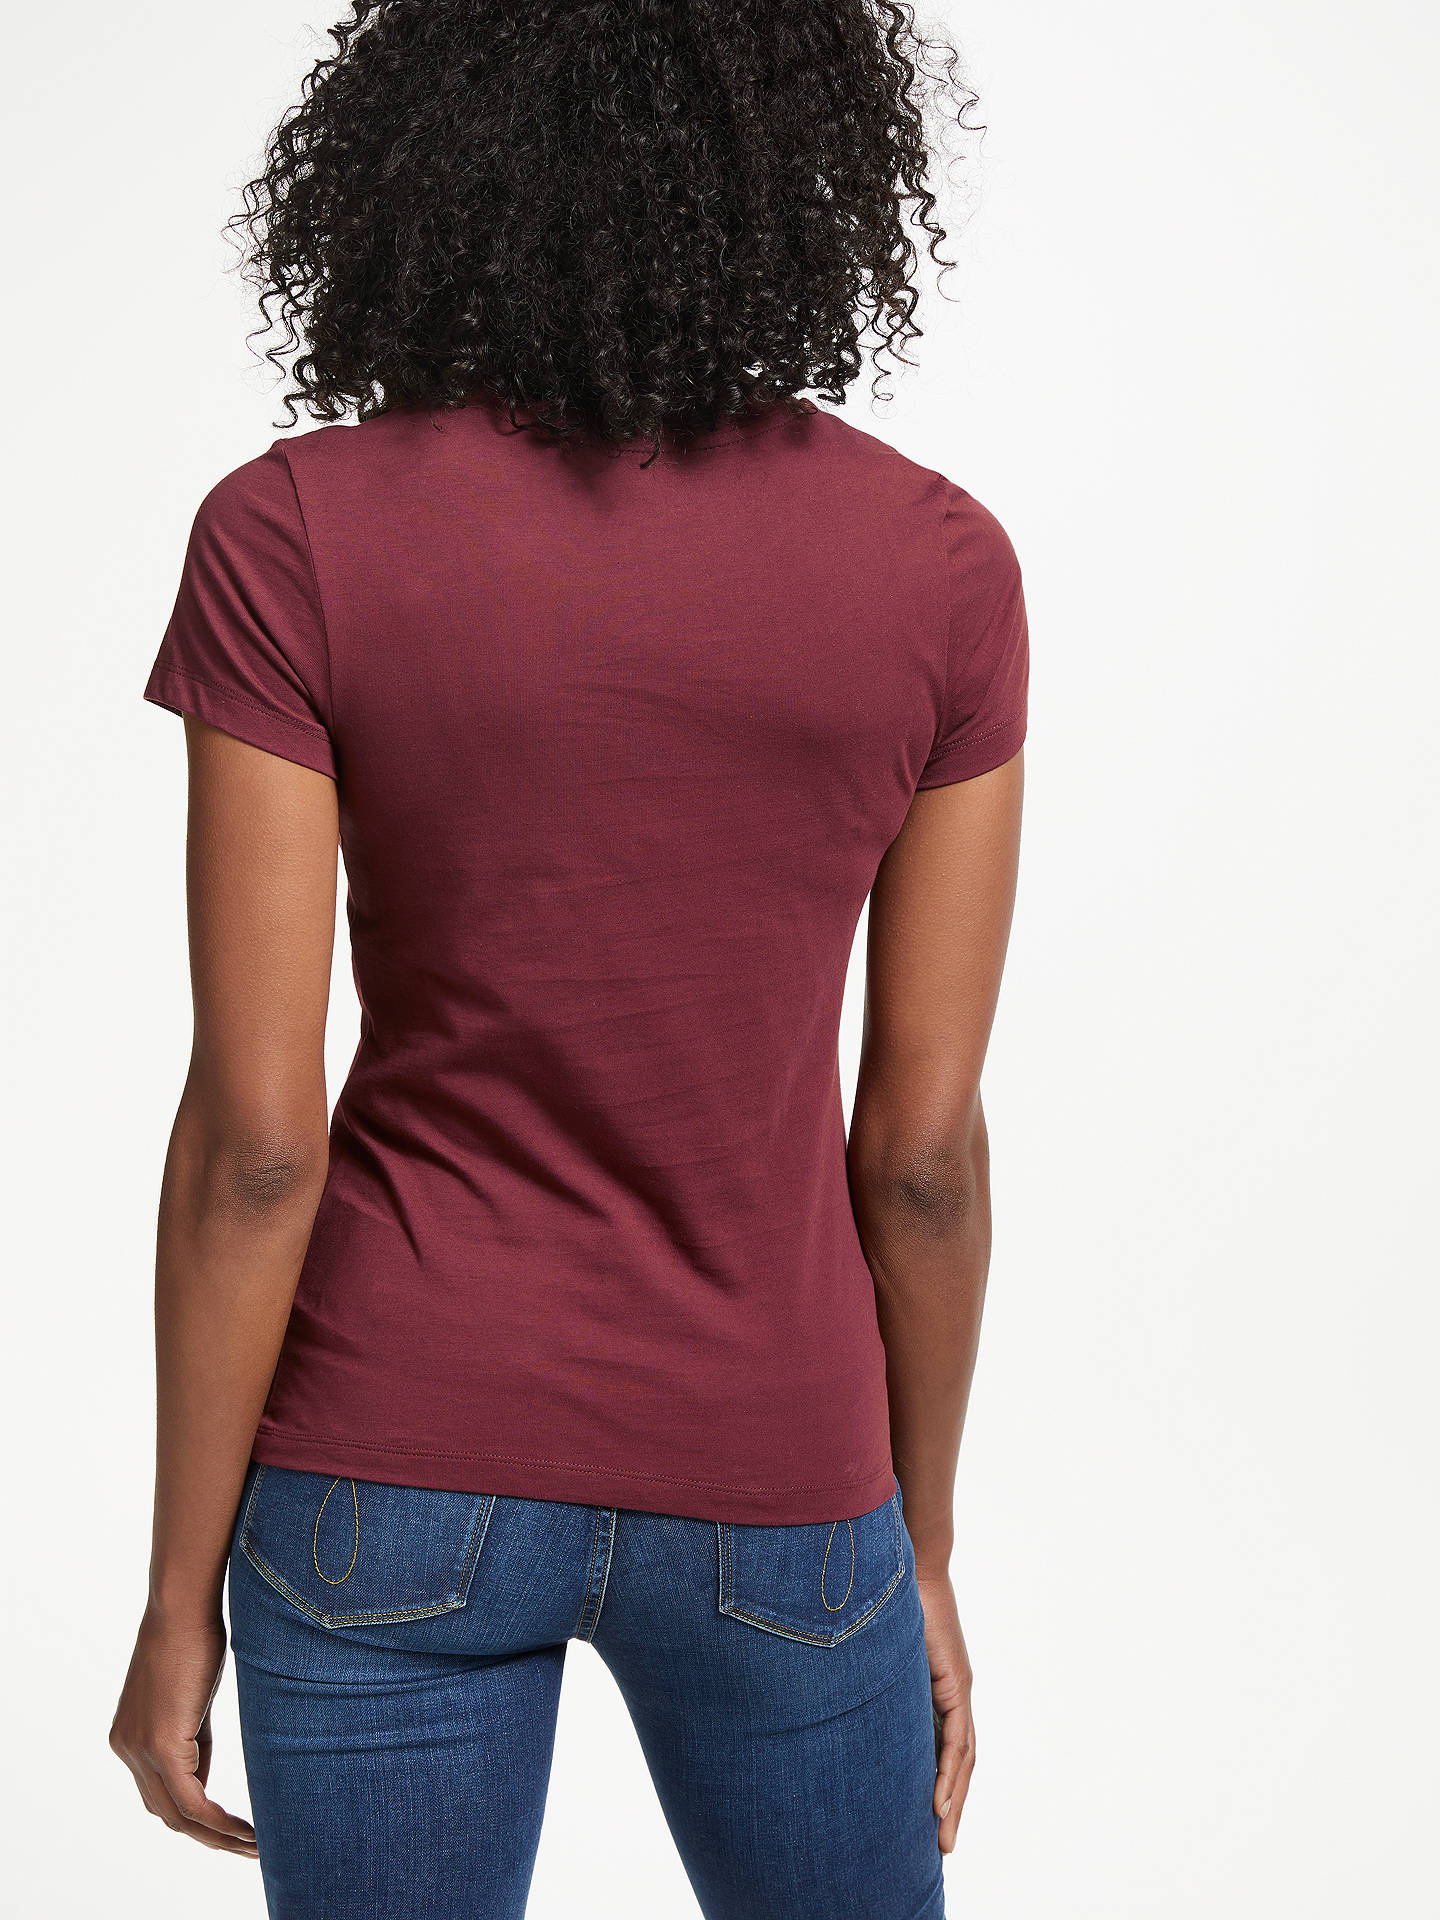 BuyCalvin Klein Institutional Flower Slim Fit T-Shirt, Tawny Port, XS Online at johnlewis.com